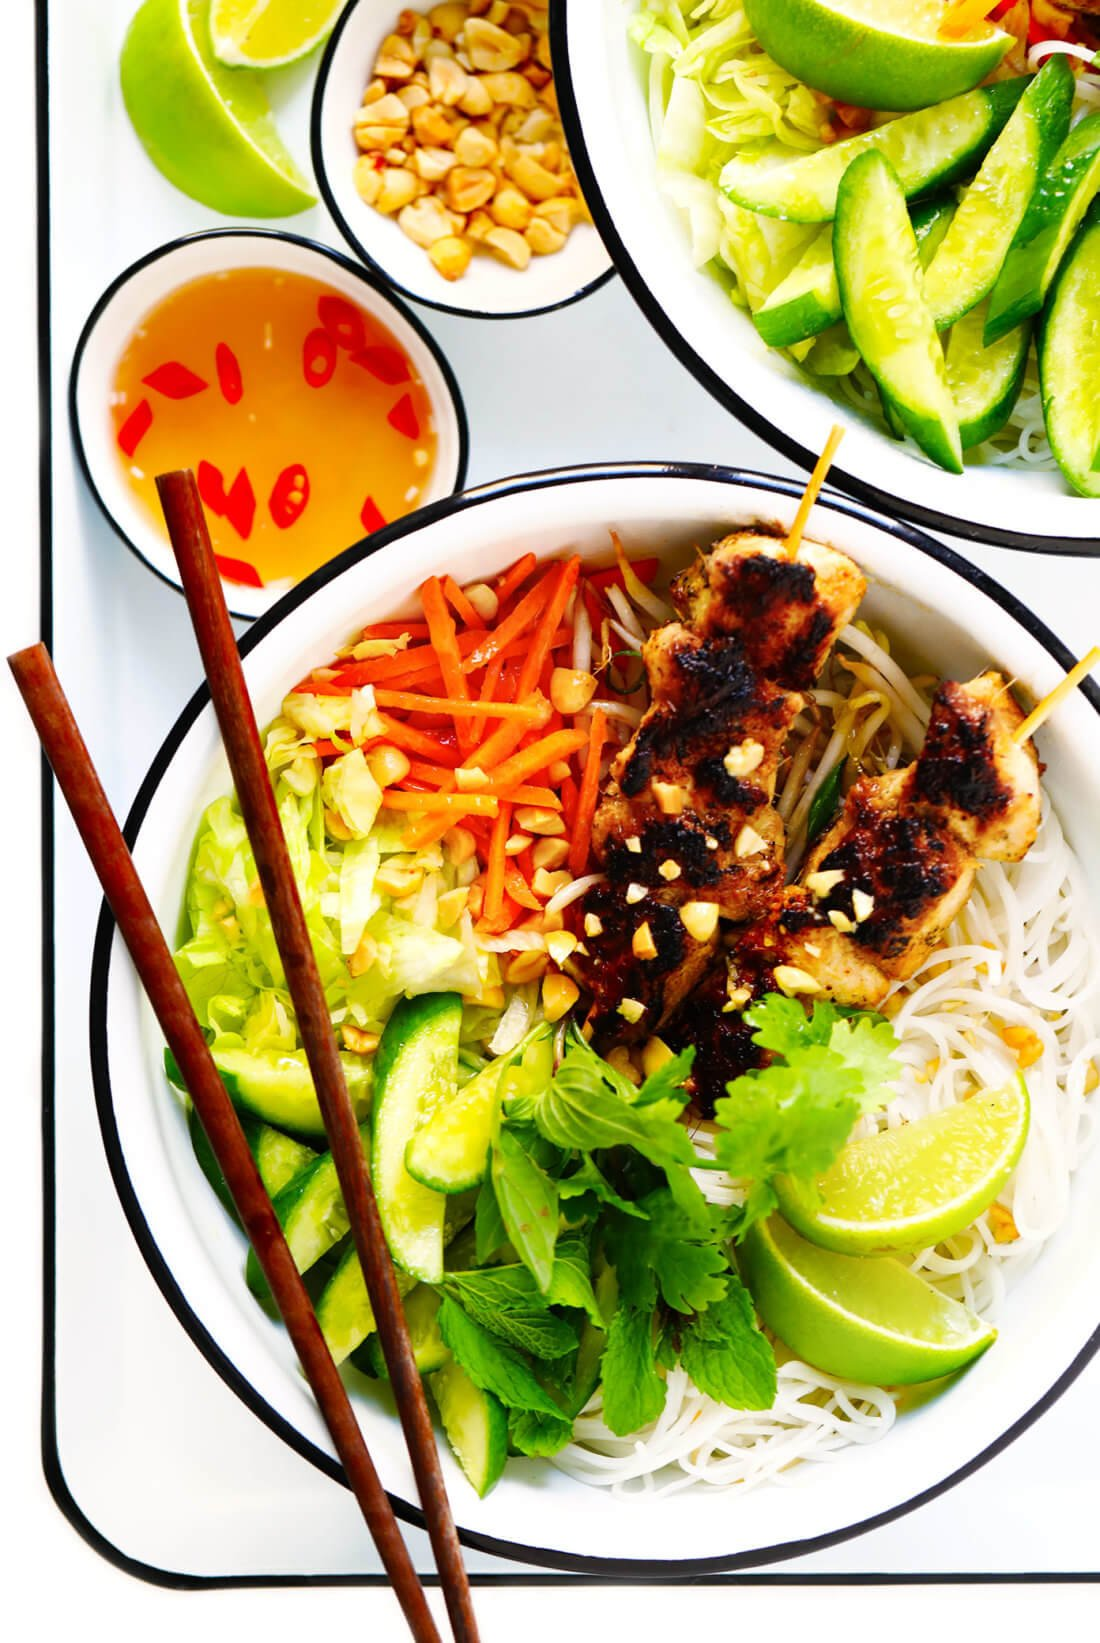 Vietnamese Bun Recipe (Chicken Noodle Bowl with Nuoc Cham)